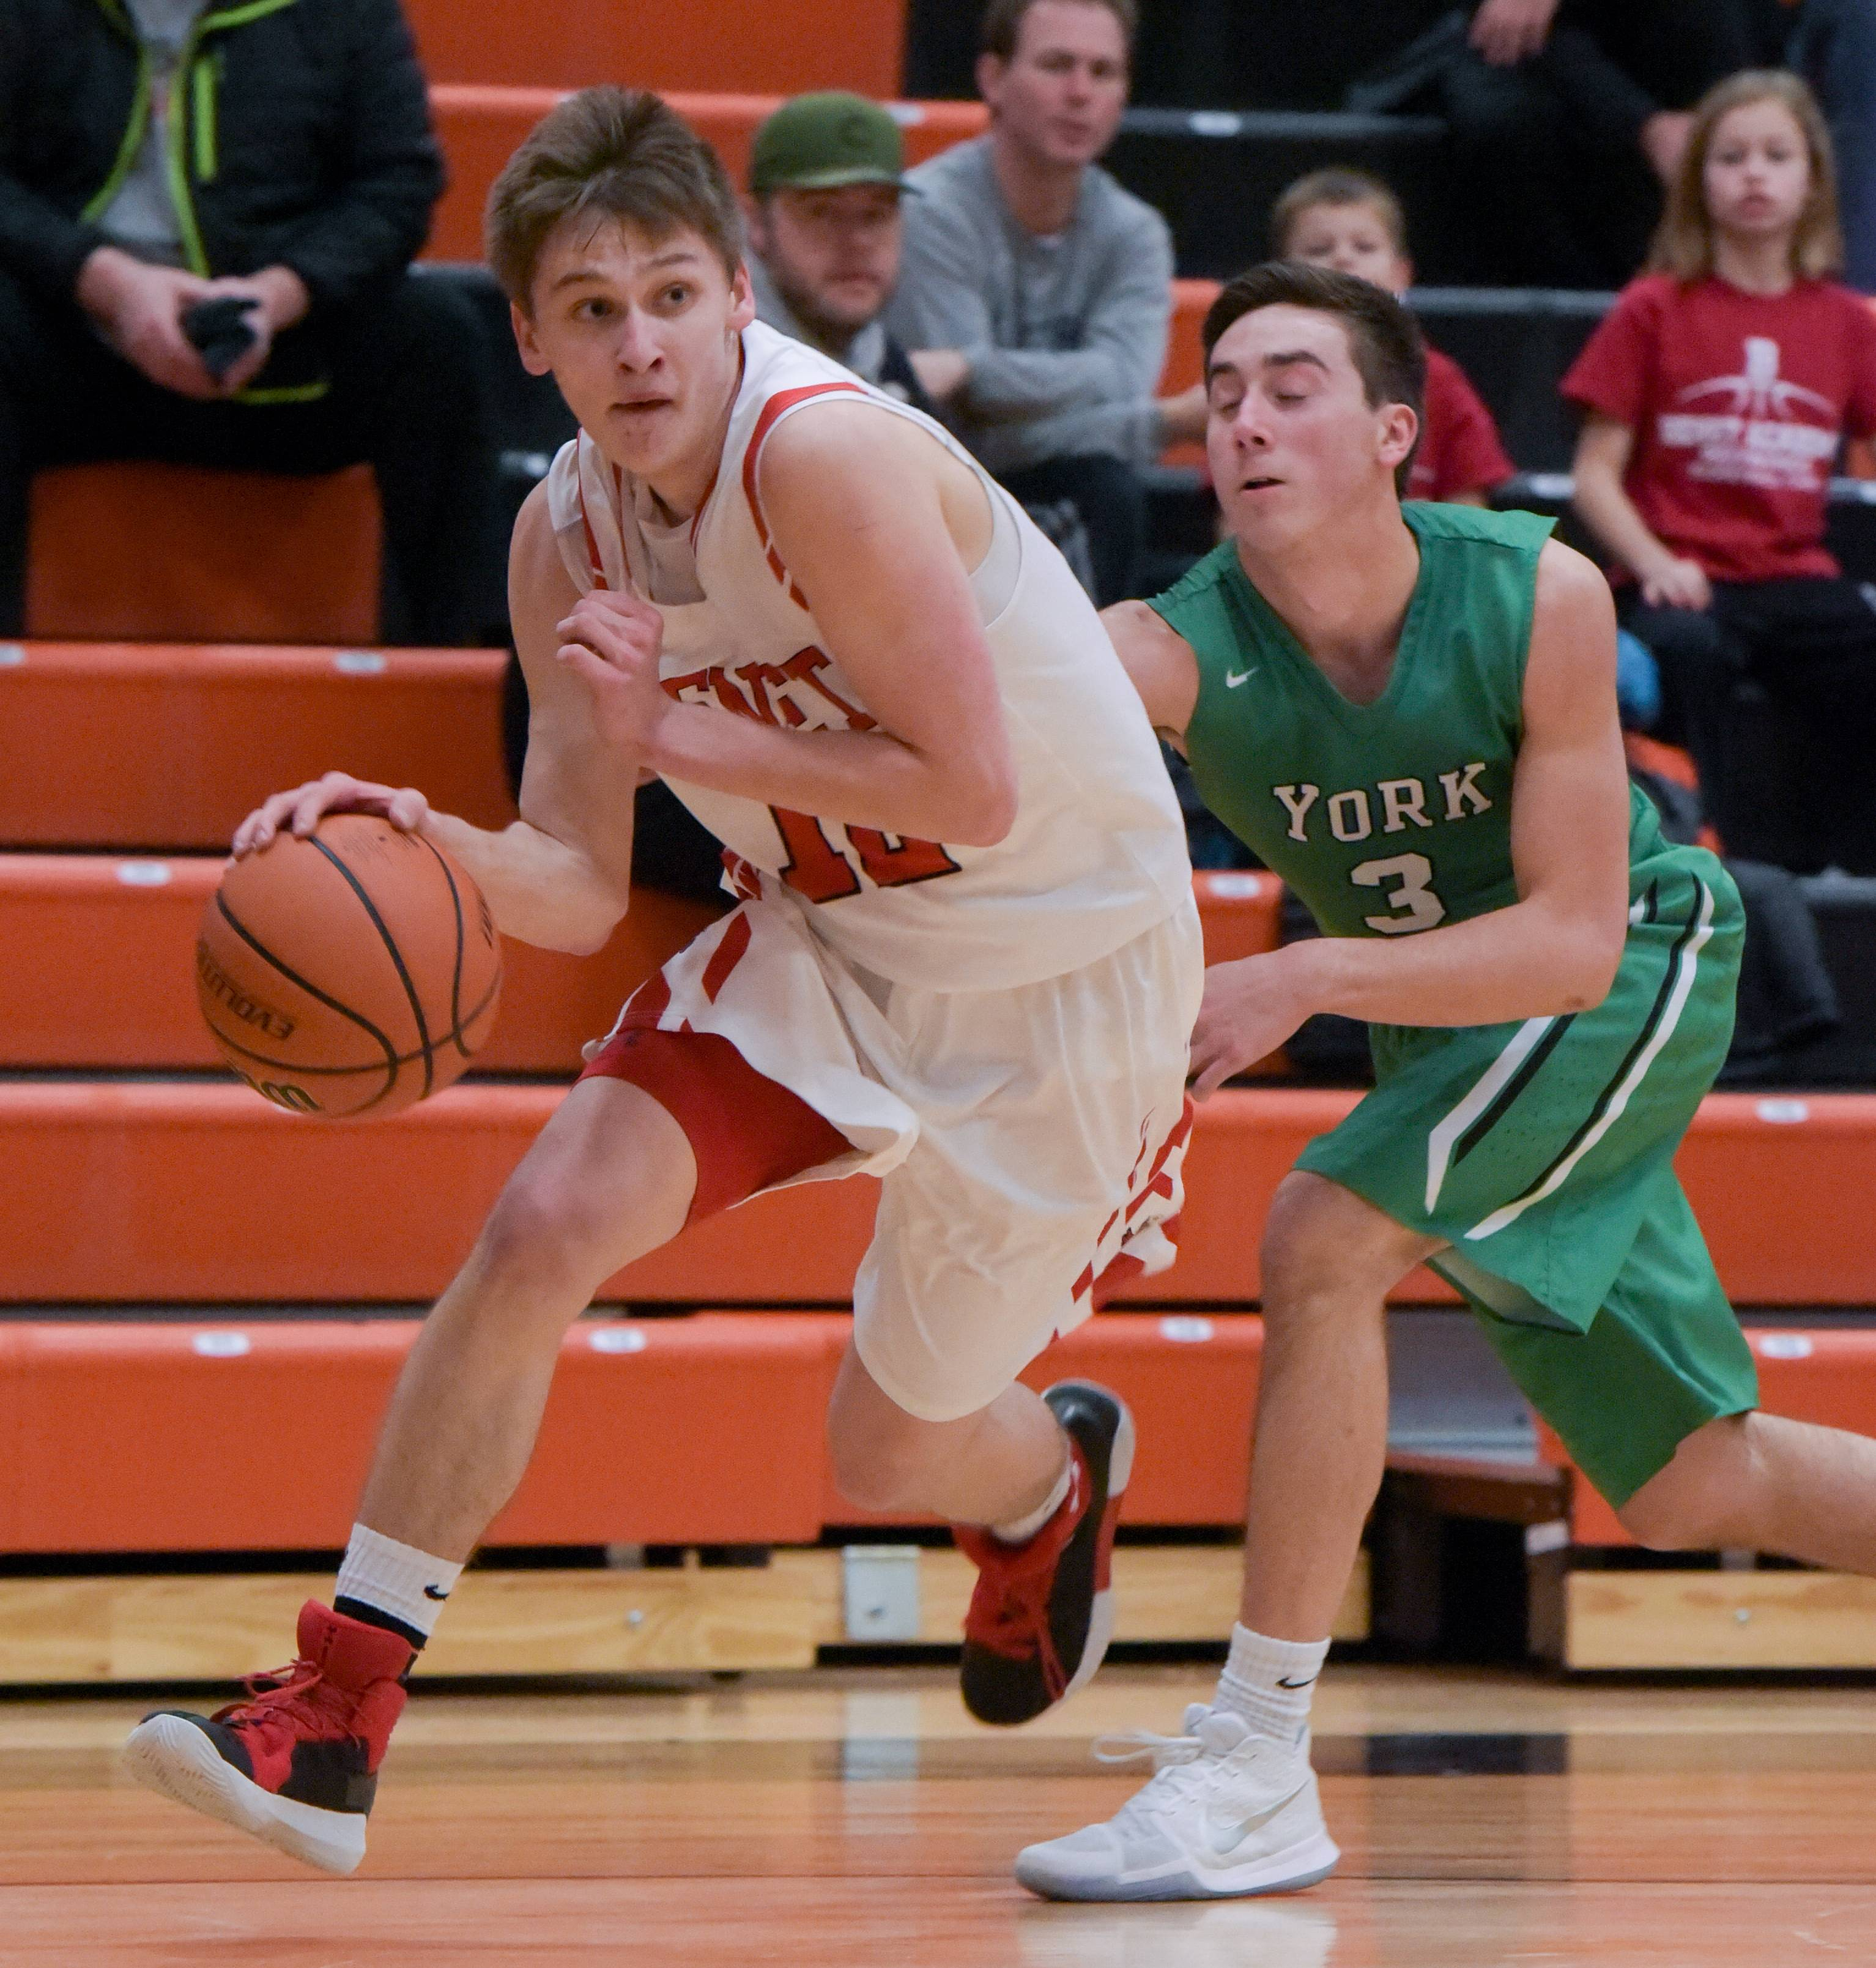 Benet's David Buh (12) moves past York's Nicholas Kosich (3) during the semifinals of the 6th annual MLK Wheaton Warrenville South boys basketball tournament on Monday, Jan. 15, 2018.